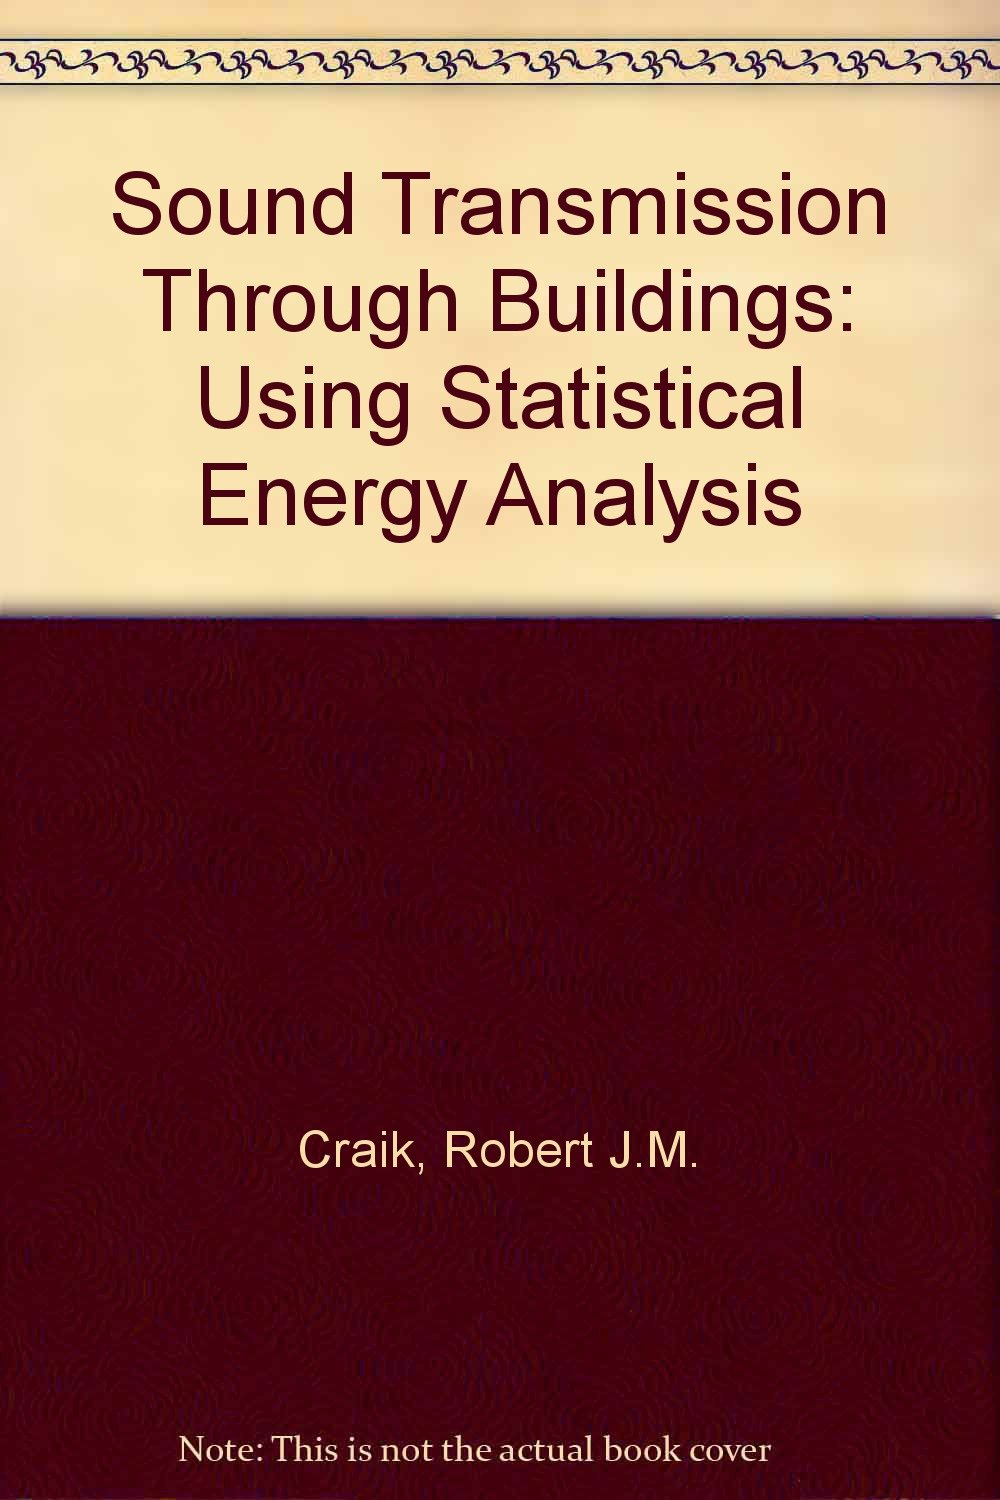 Sound Transmission Through Buildings: Using Statistical Energy Analysis